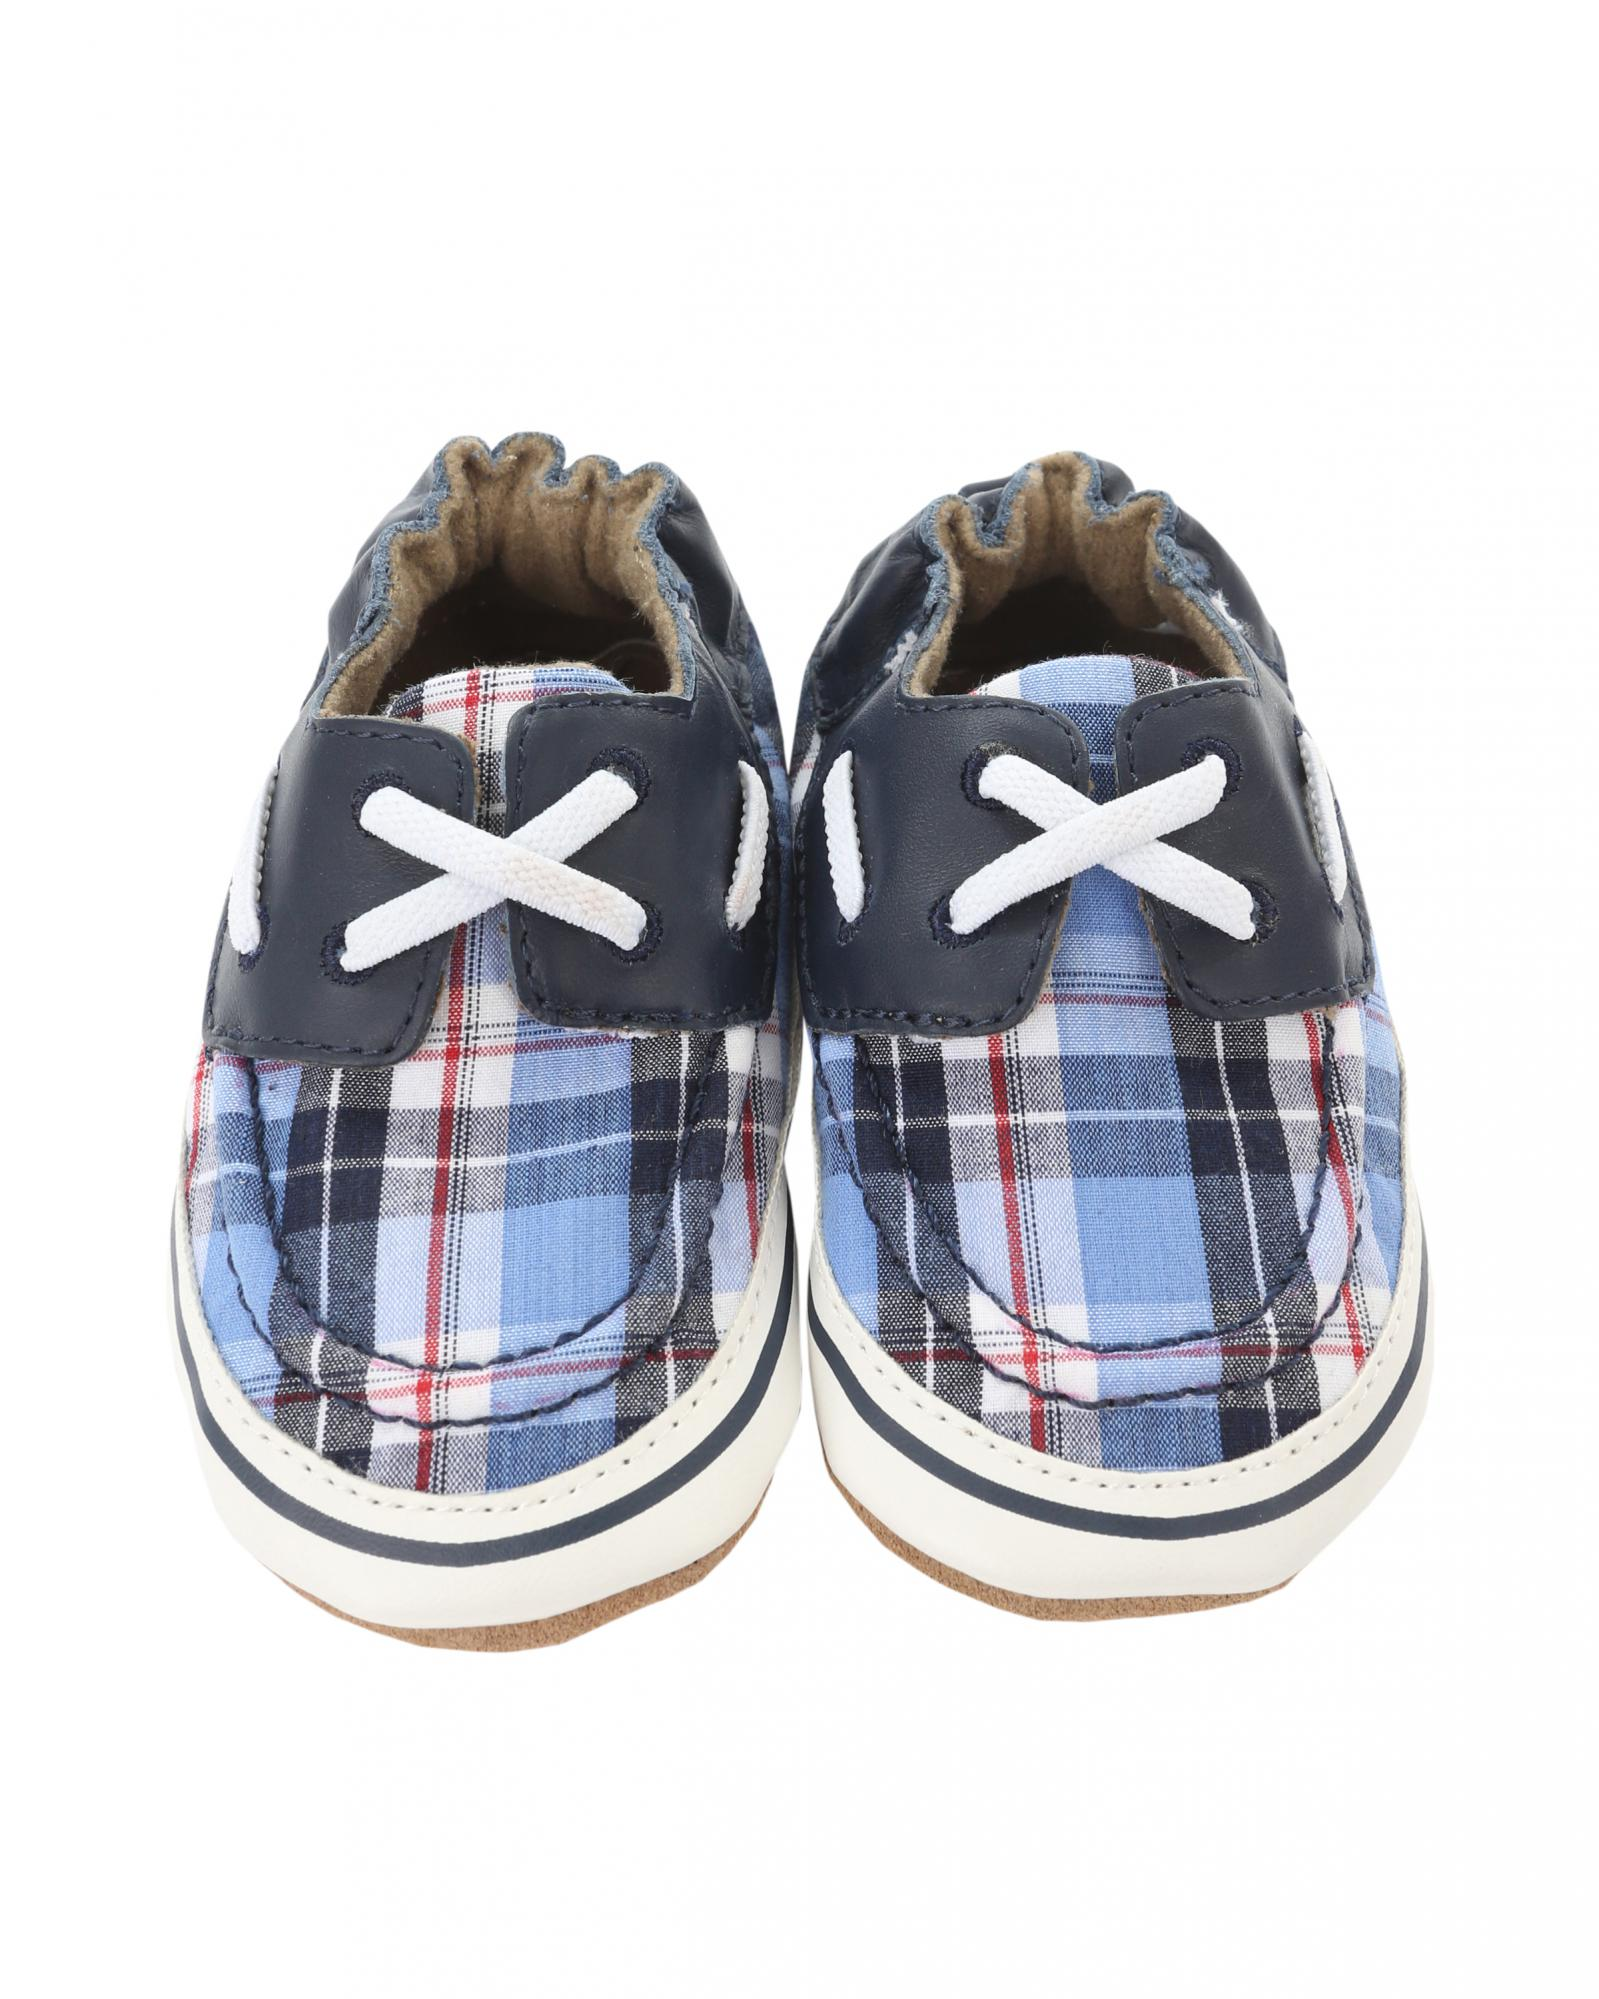 robeez-soft-sole-baby-shoes-connor-blue-plaid.jpg